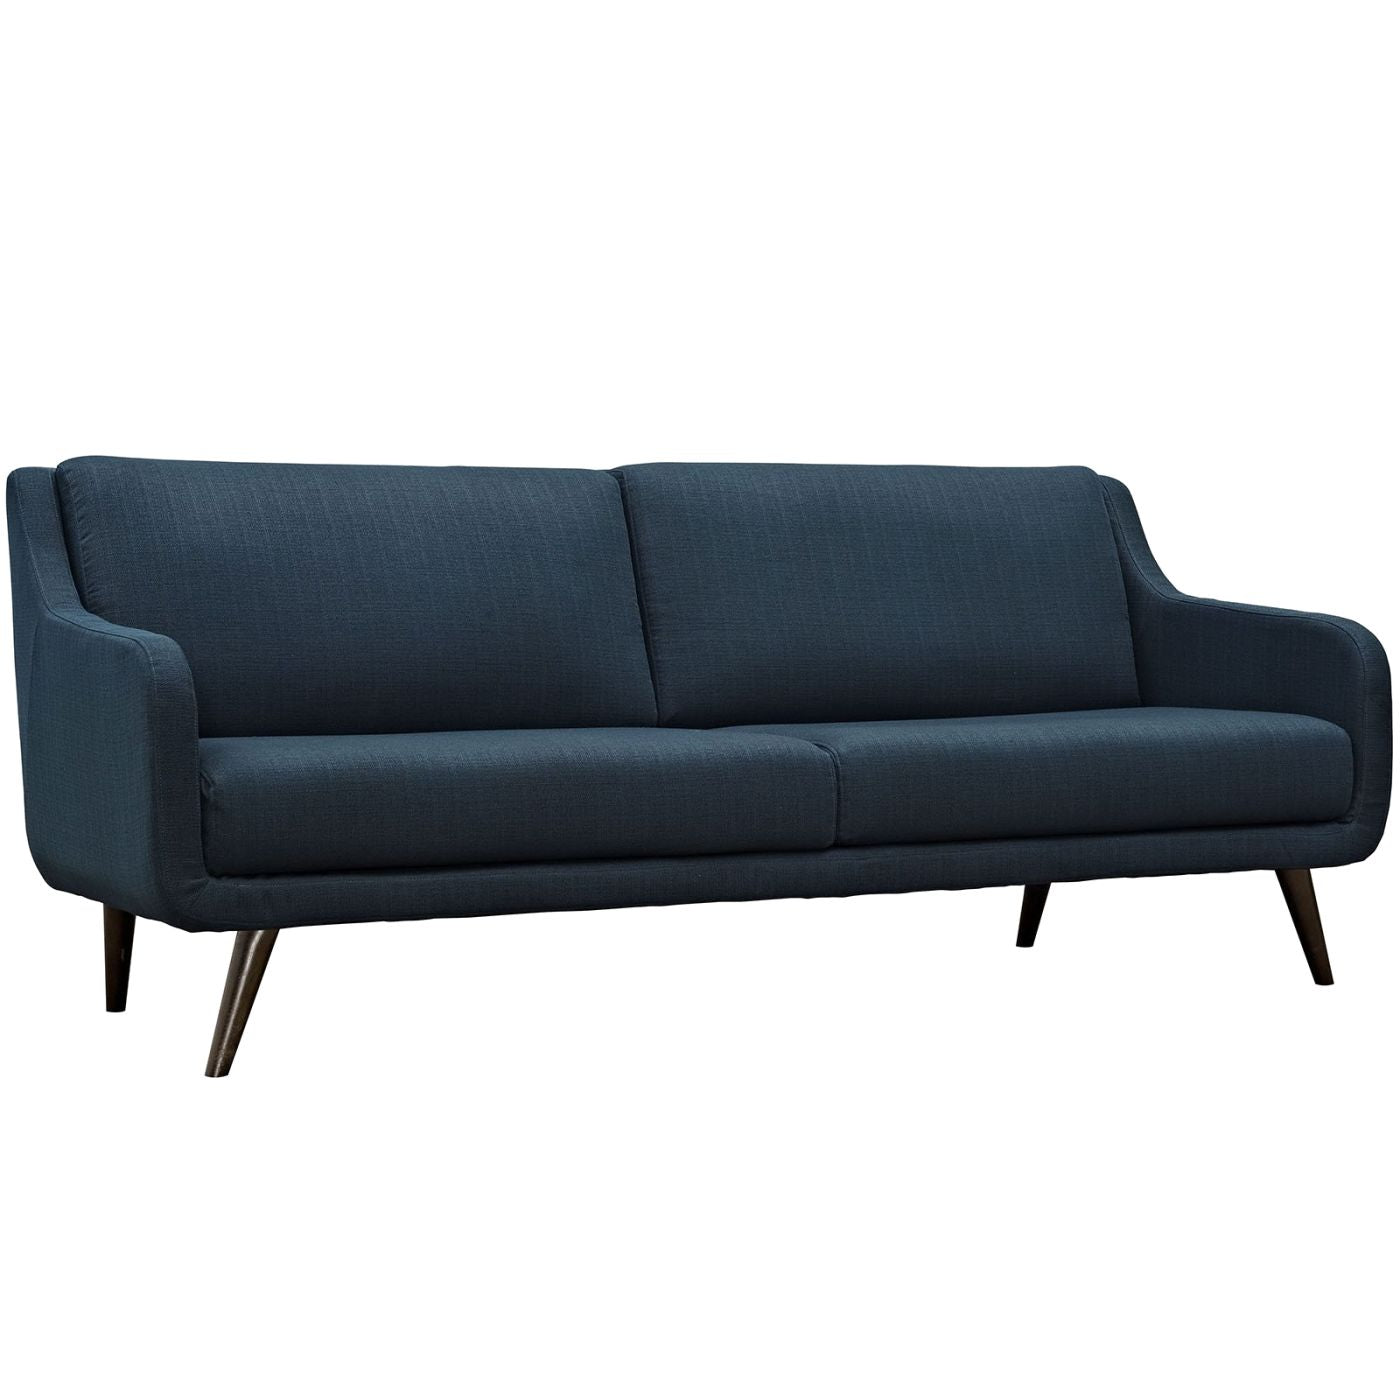 Modway verve upholstered sofa eei 2129 lgr only at contemporary furniture warehouse Upholstered sofas and loveseats